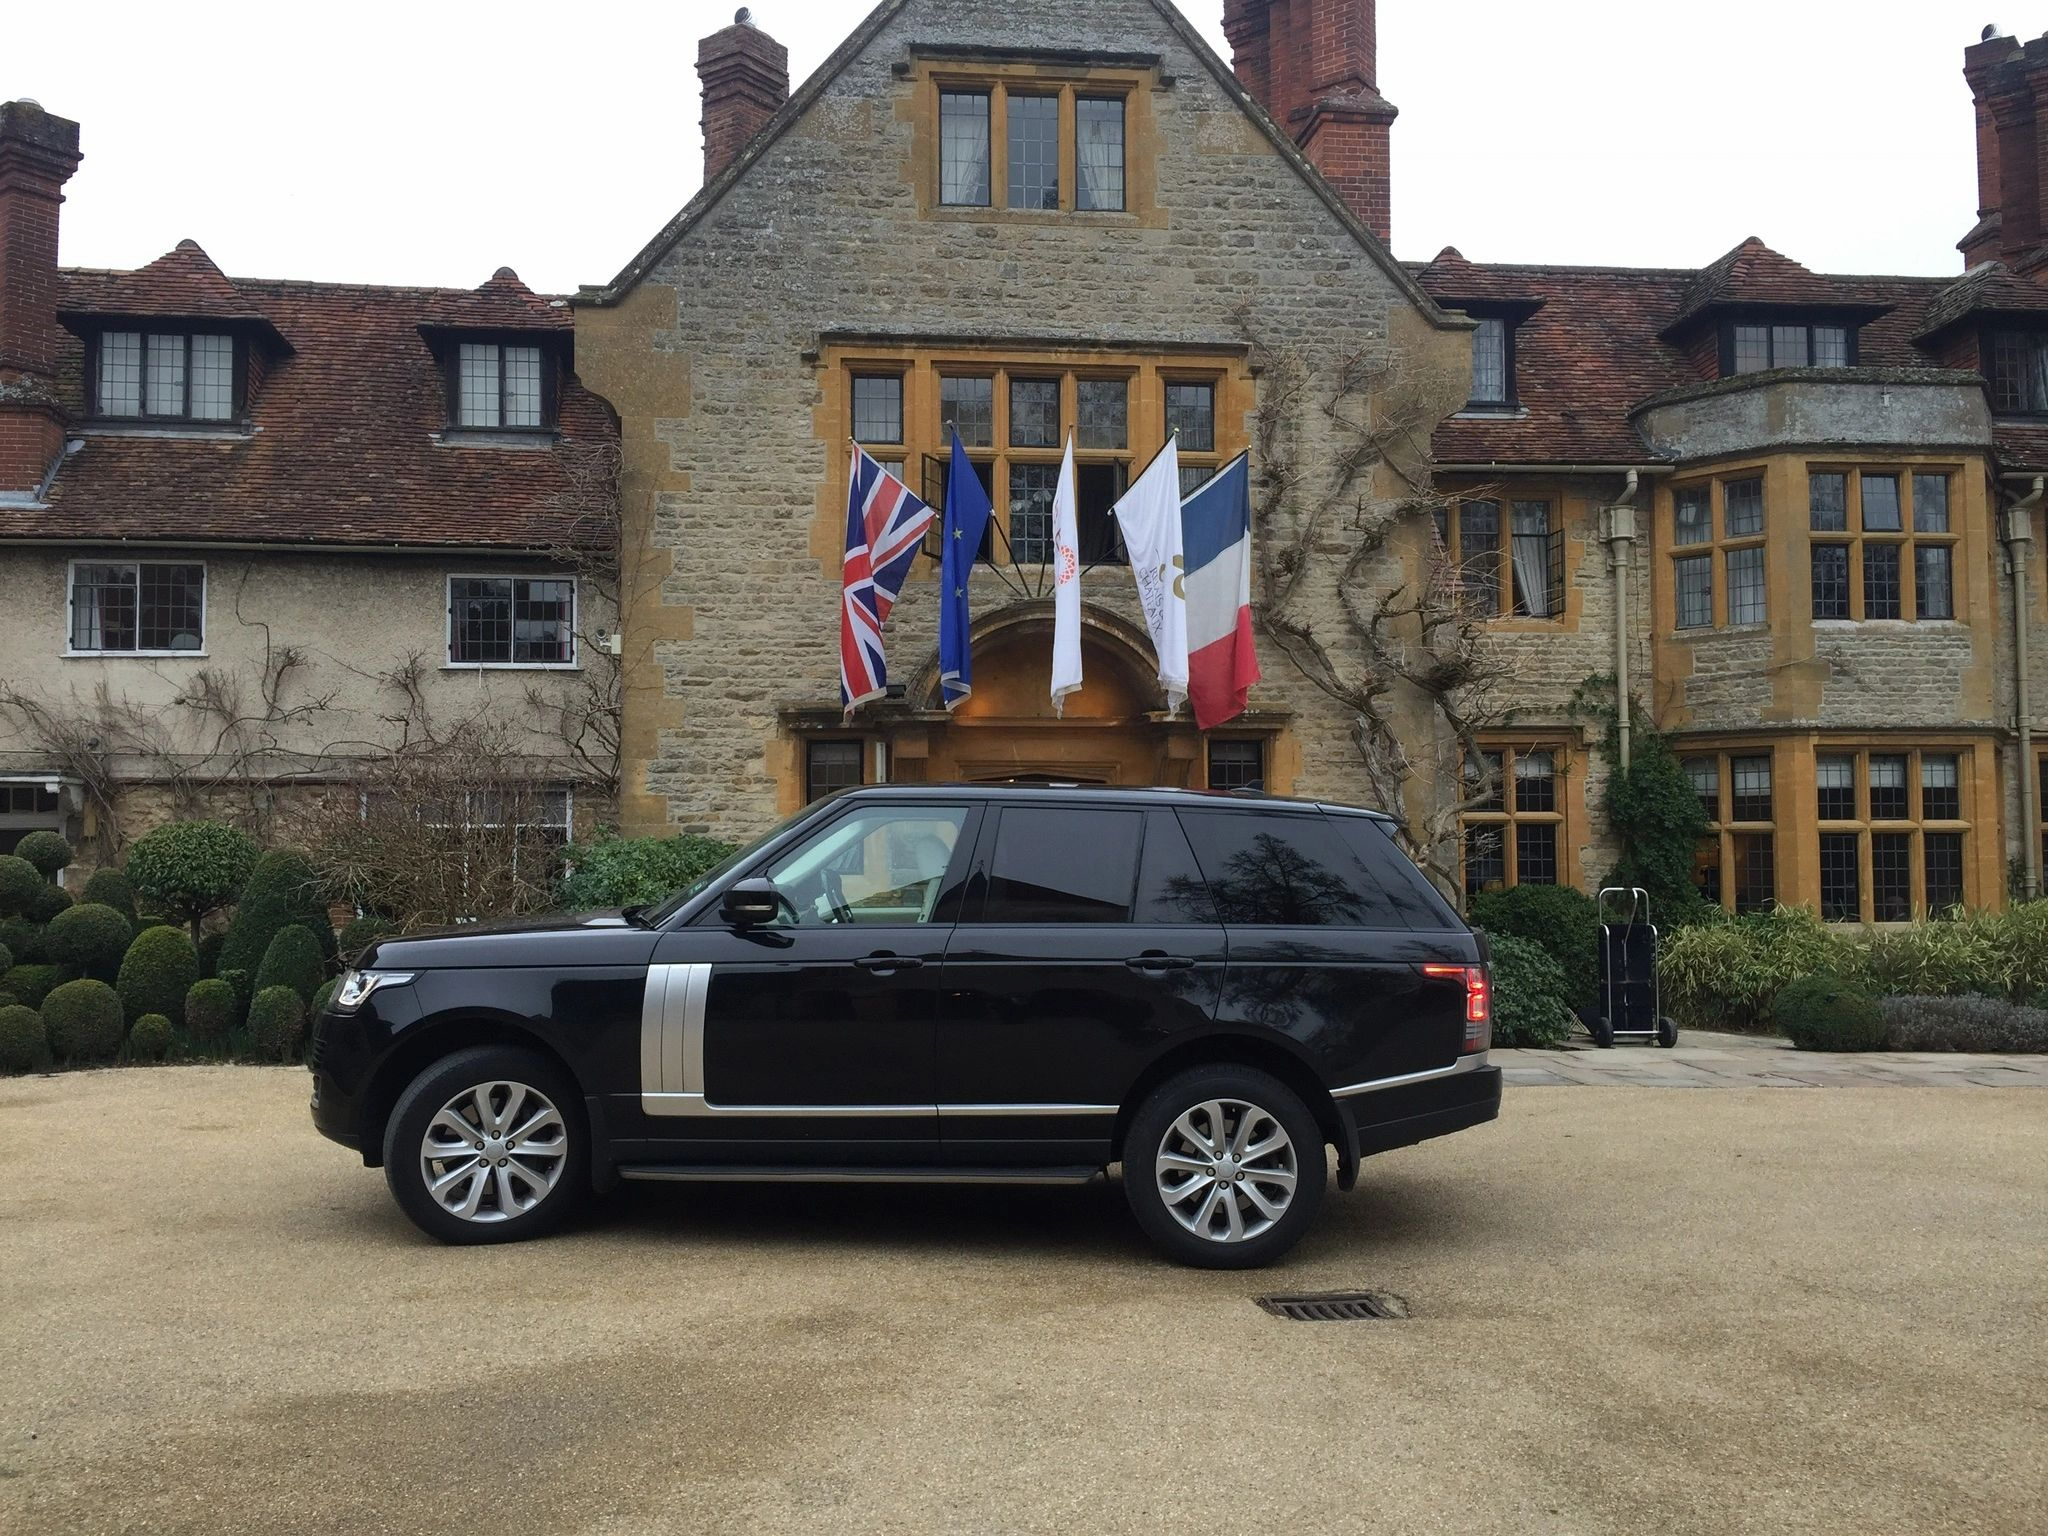 Rayleigh Airport Transfer | Rayleigh Chauffeur | Rayleigh Taxi to Heathrow Airport | Rayleigh Taxi